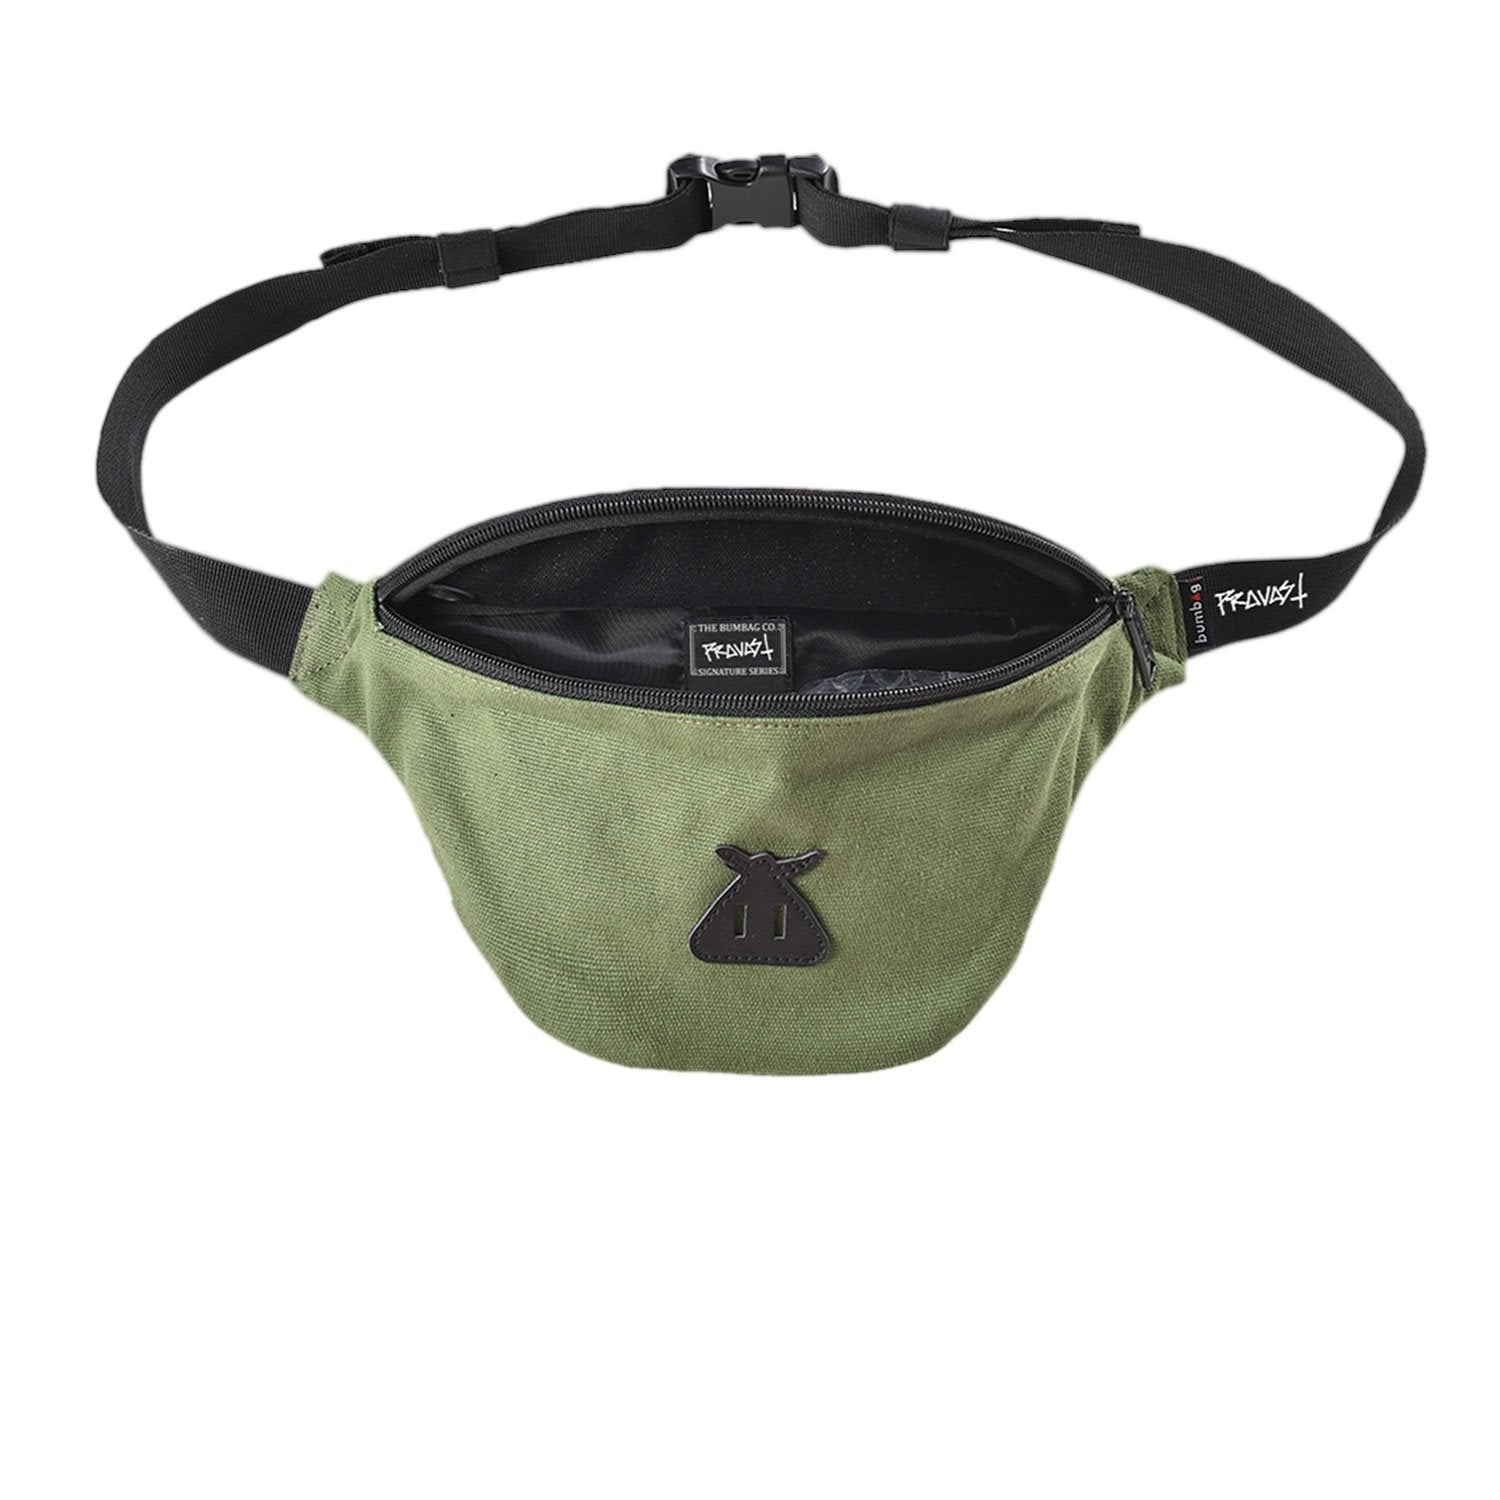 Bumbag Basic Hip Pack - Provost Product Photo #1